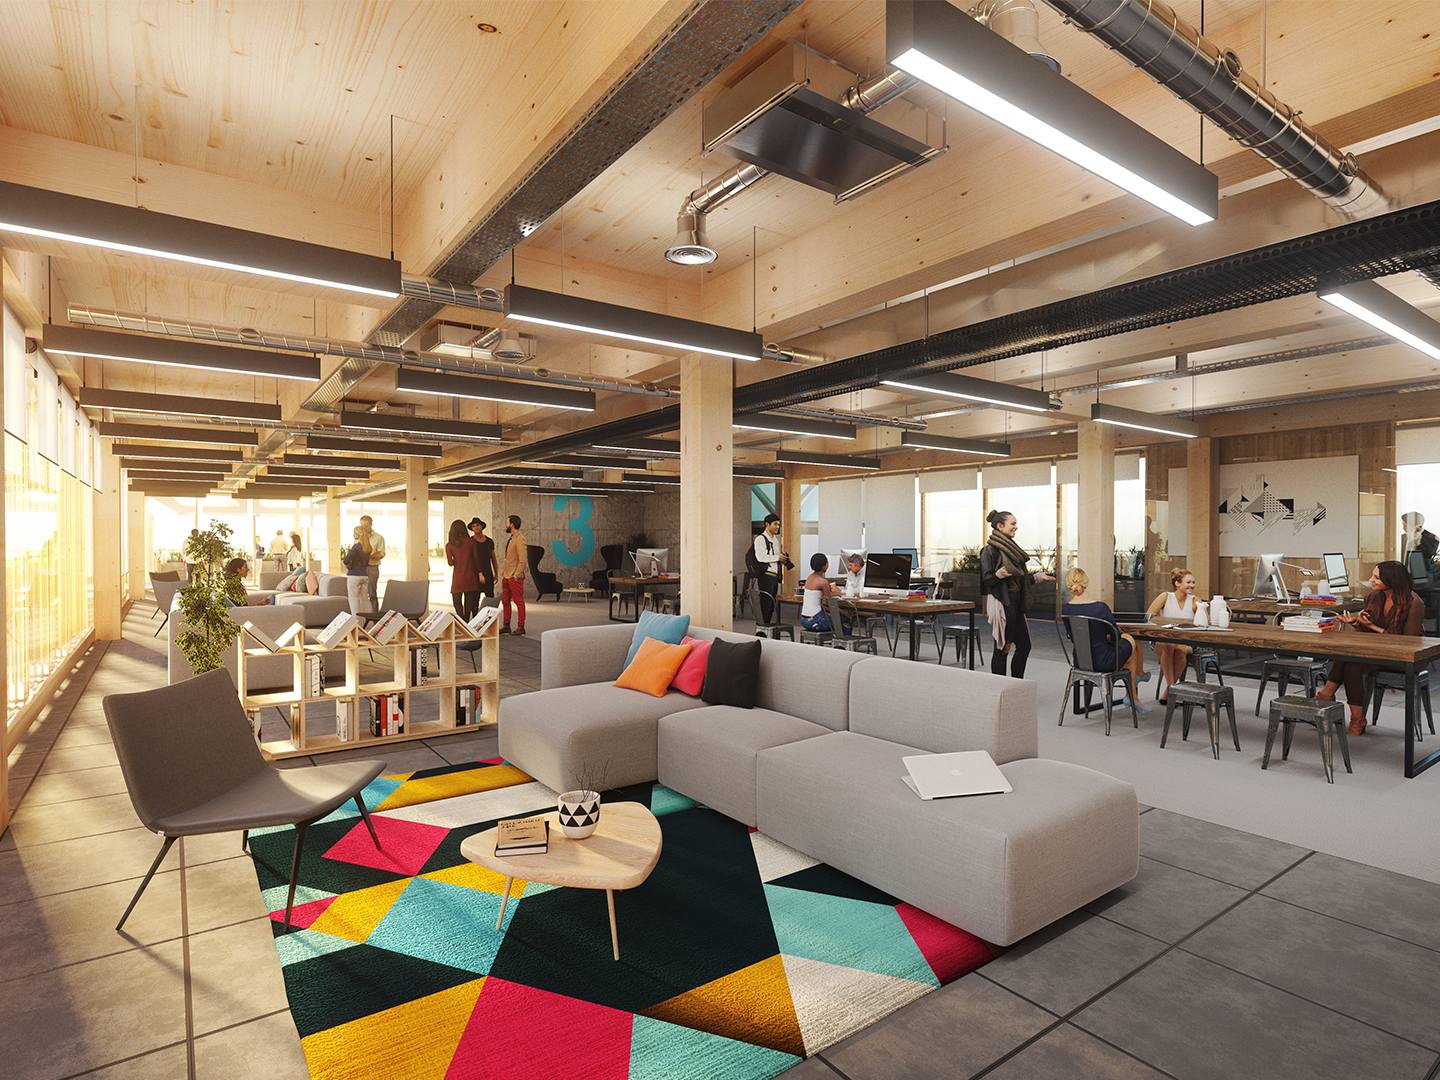 The results are in: let's reimagine the office